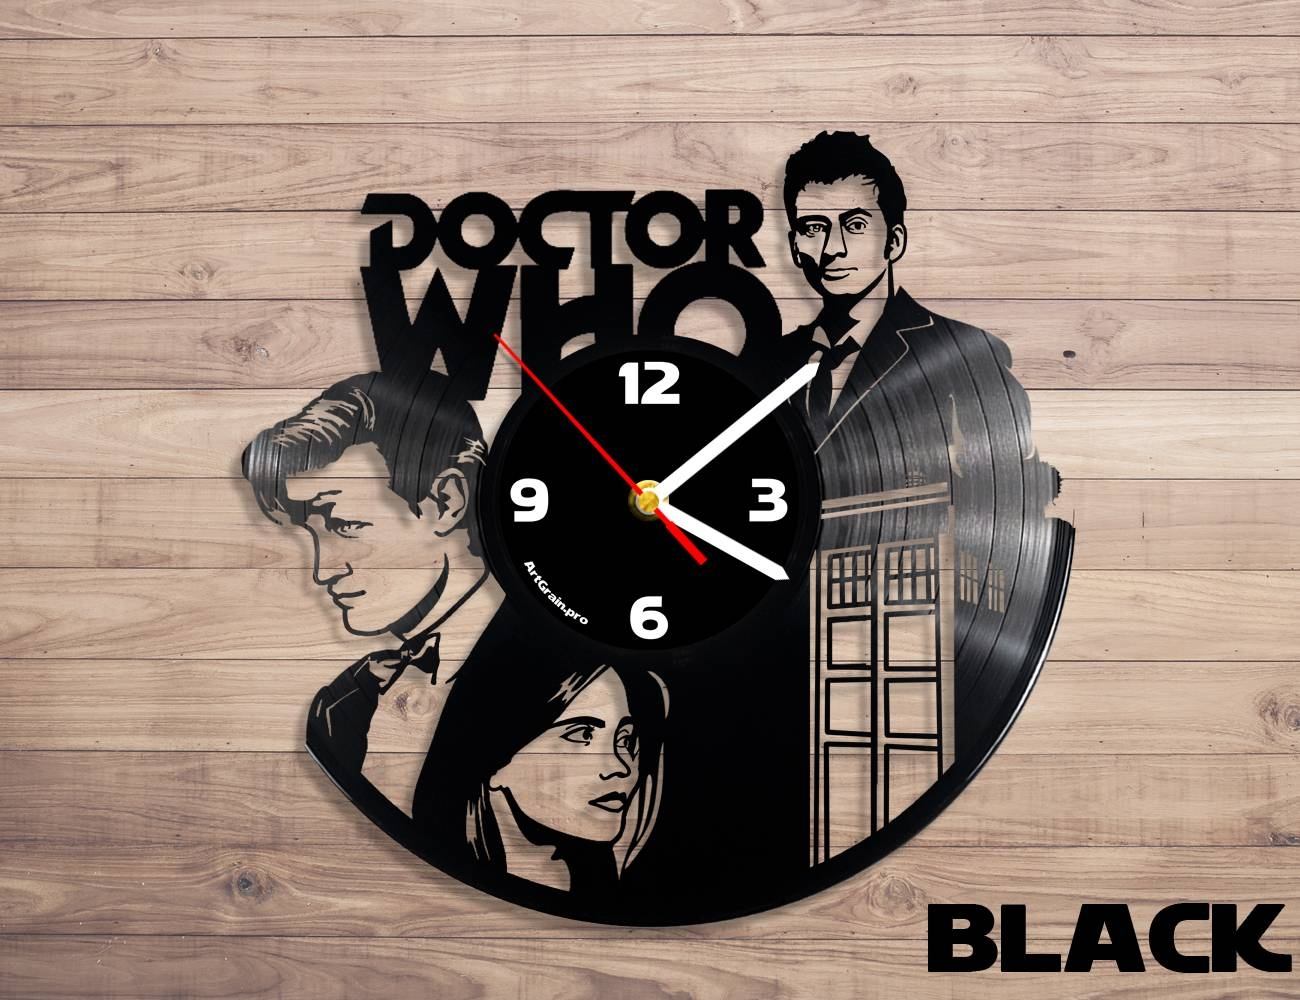 Doctor Who Vinyl Record Wall Clock – Artgrain Pertaining To 2017 Doctor Who Wall Art (View 21 of 33)